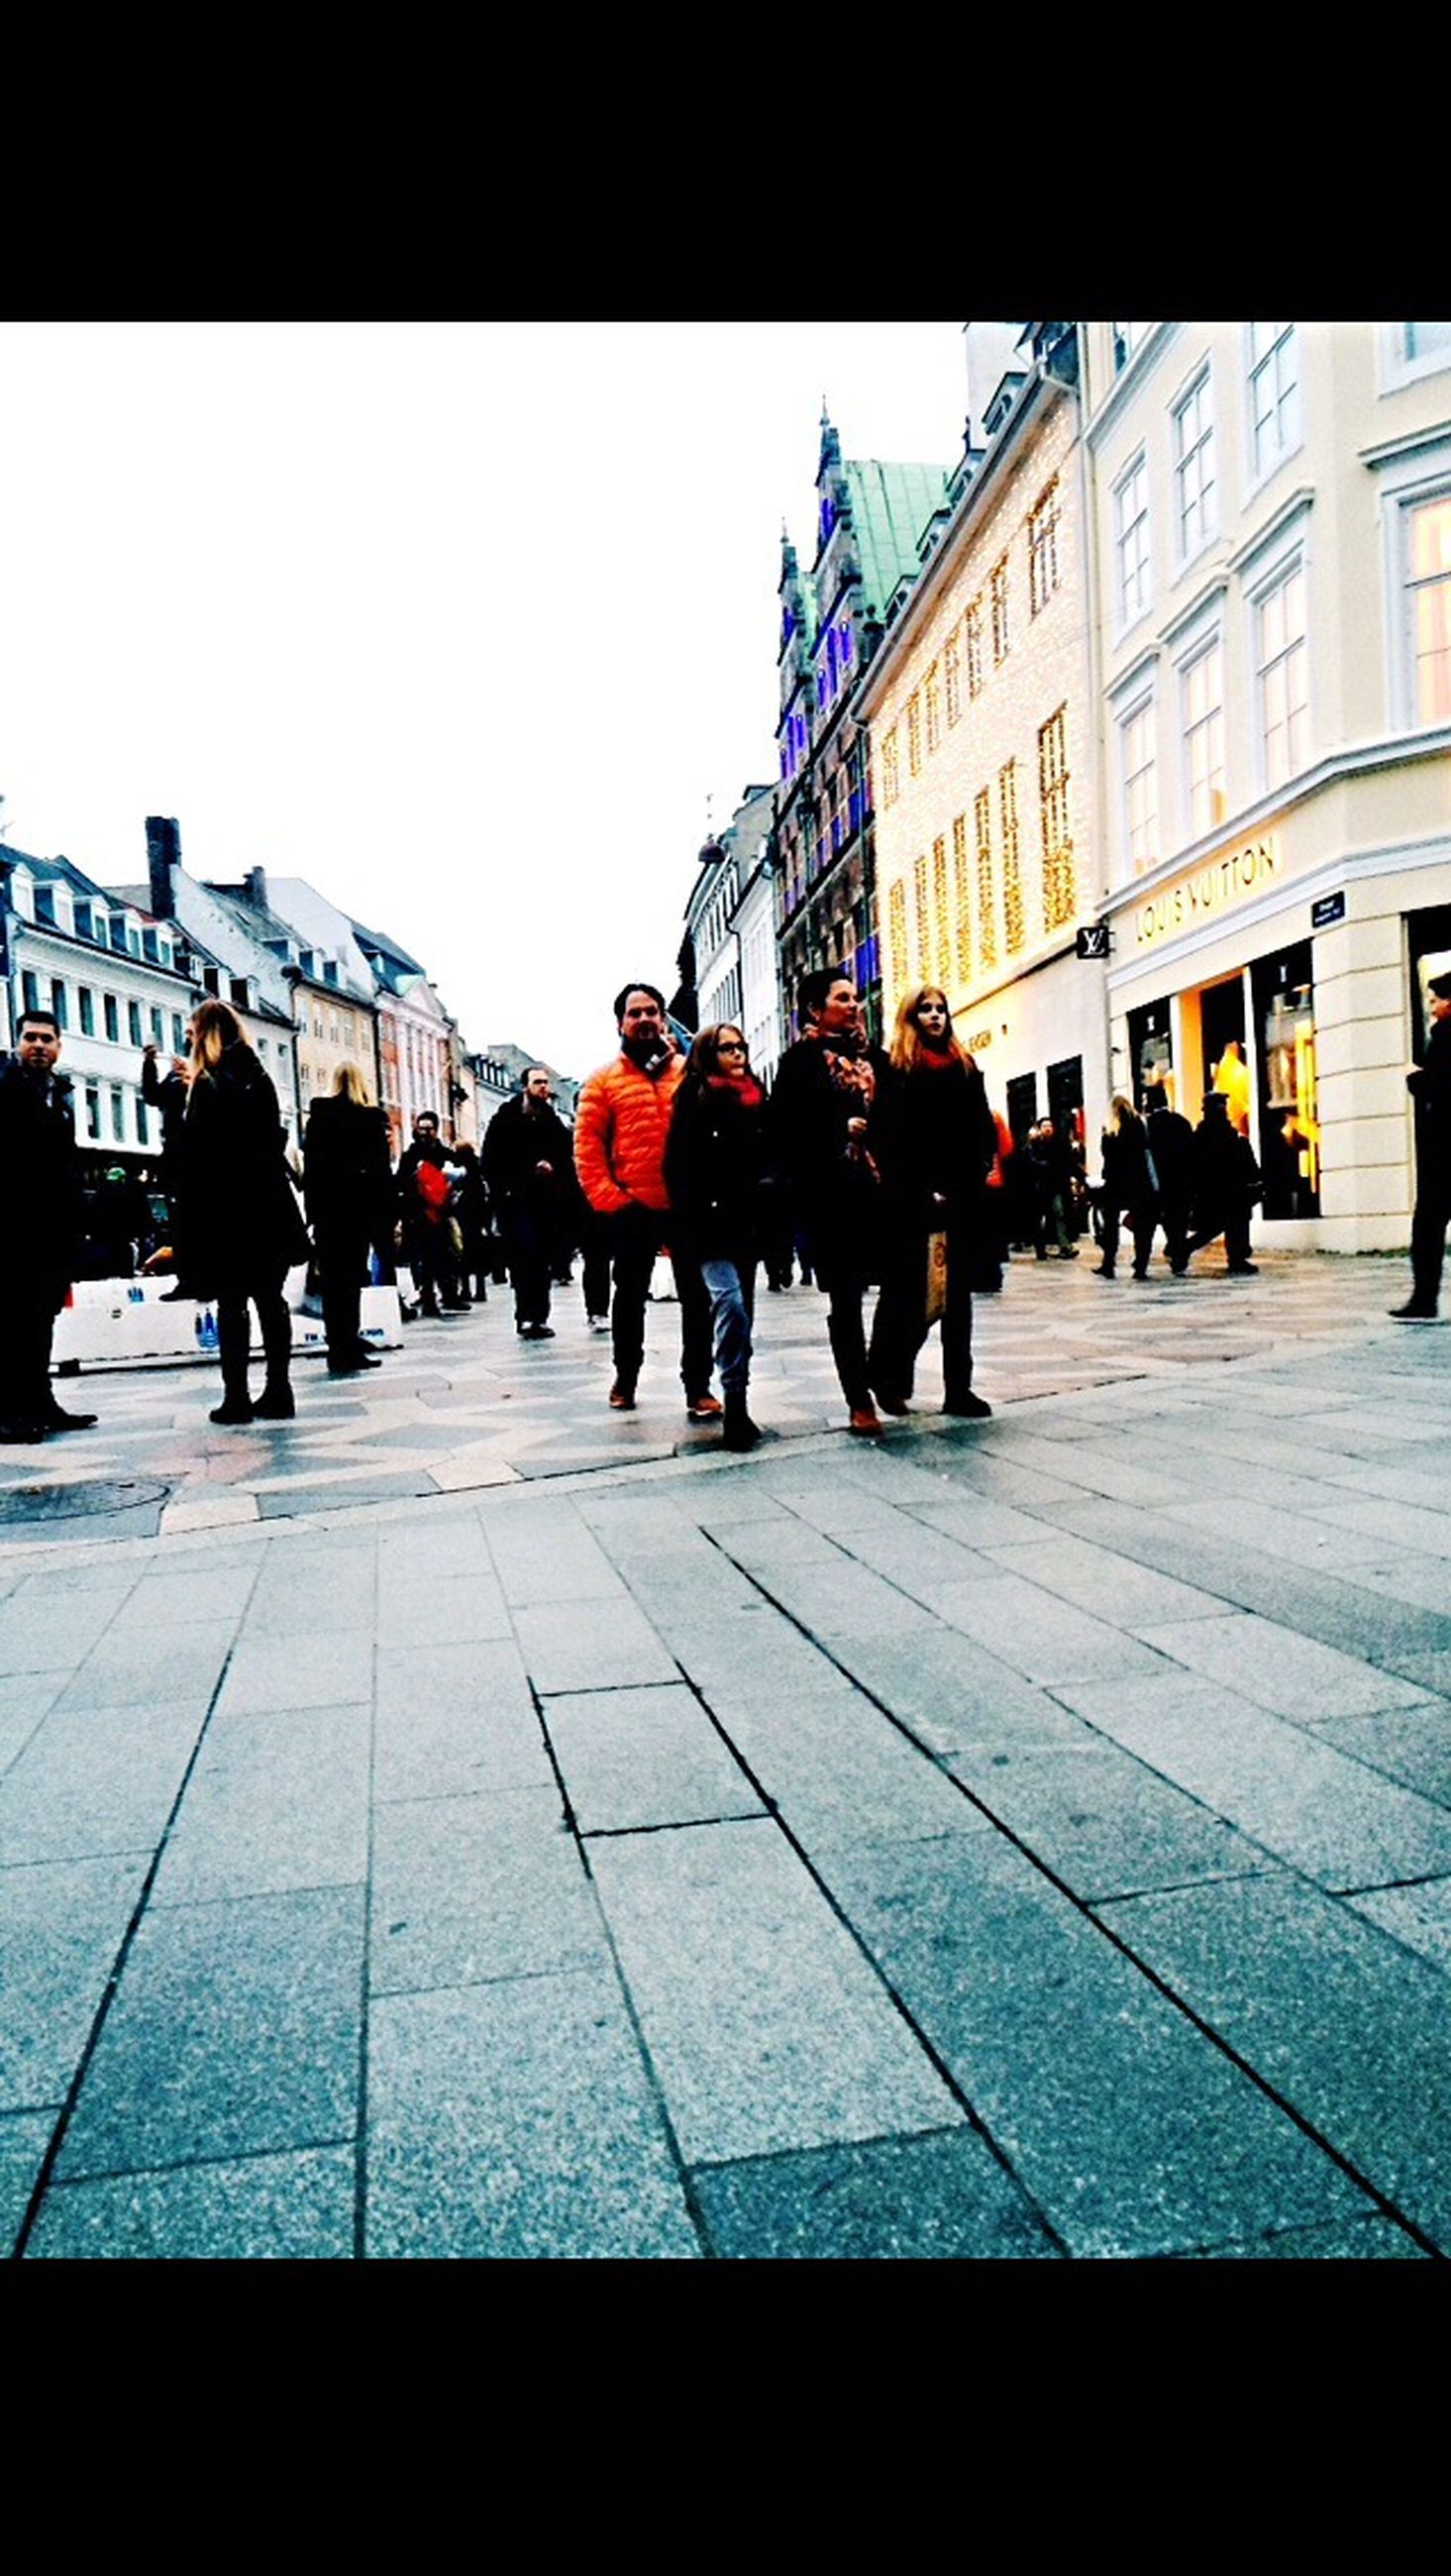 large group of people, building exterior, architecture, built structure, men, city, person, street, walking, city life, lifestyles, transfer print, clear sky, auto post production filter, mixed age range, city street, medium group of people, group of people, transportation